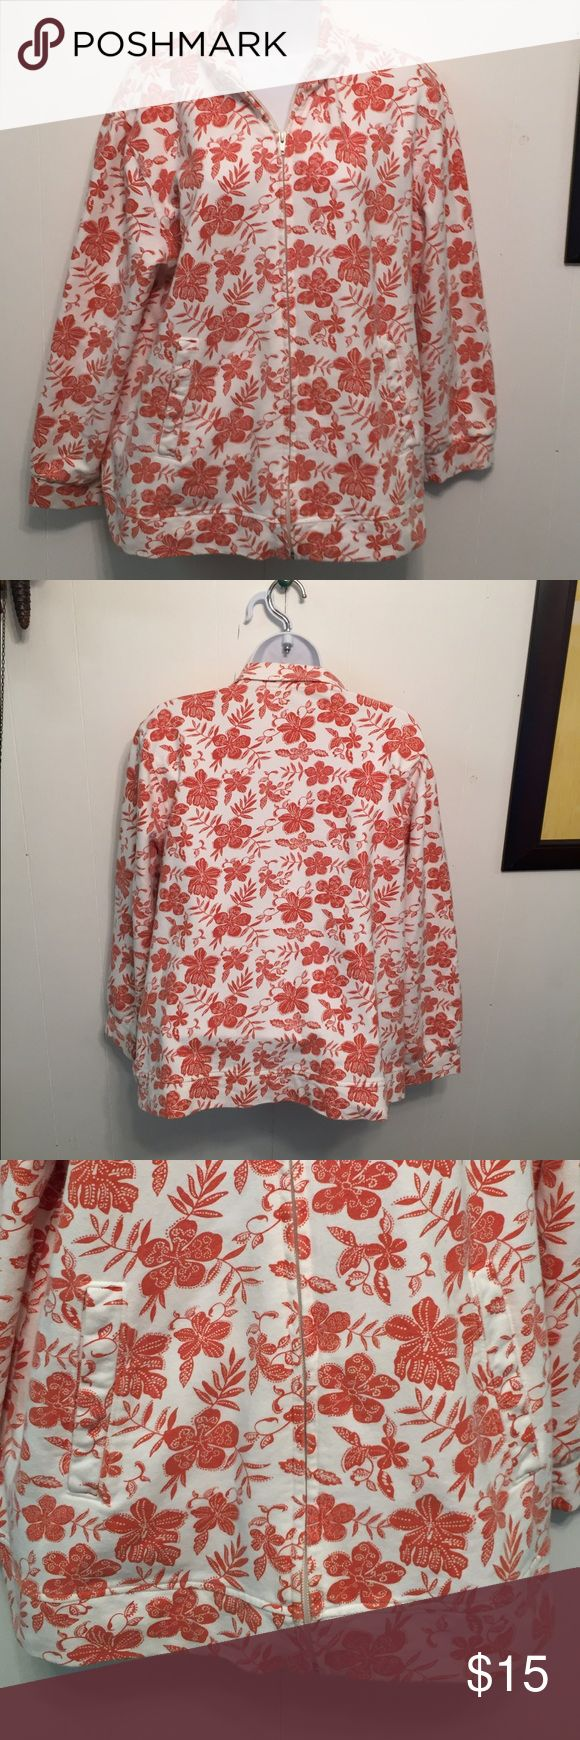 "Orvis Women's Zip Up Jacket Floral sz L Good clean condition.  Stated size L.  Bust up to 46"". Length shoulder to bottom 24 1/2"".  Banded waist, metal zipper closure.  Mock turtleneck when zipped up all the way.   Front pockets. Soft fabric. Terra cotta orange and white Orvis Jackets & Coats"